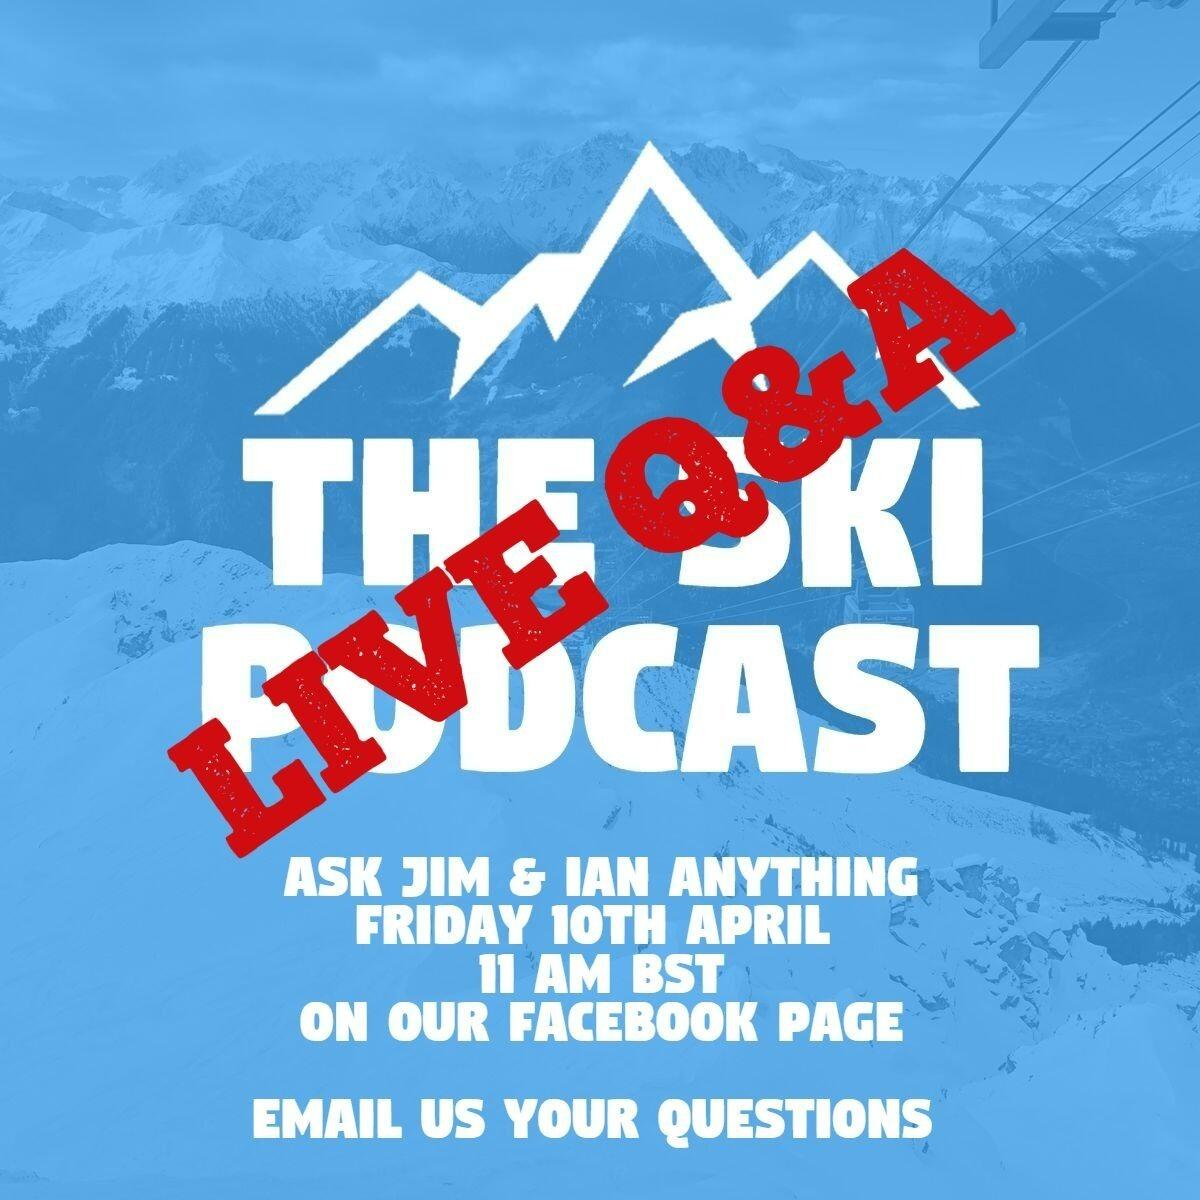 COMING UP - Live Q&A with Jim & Iain